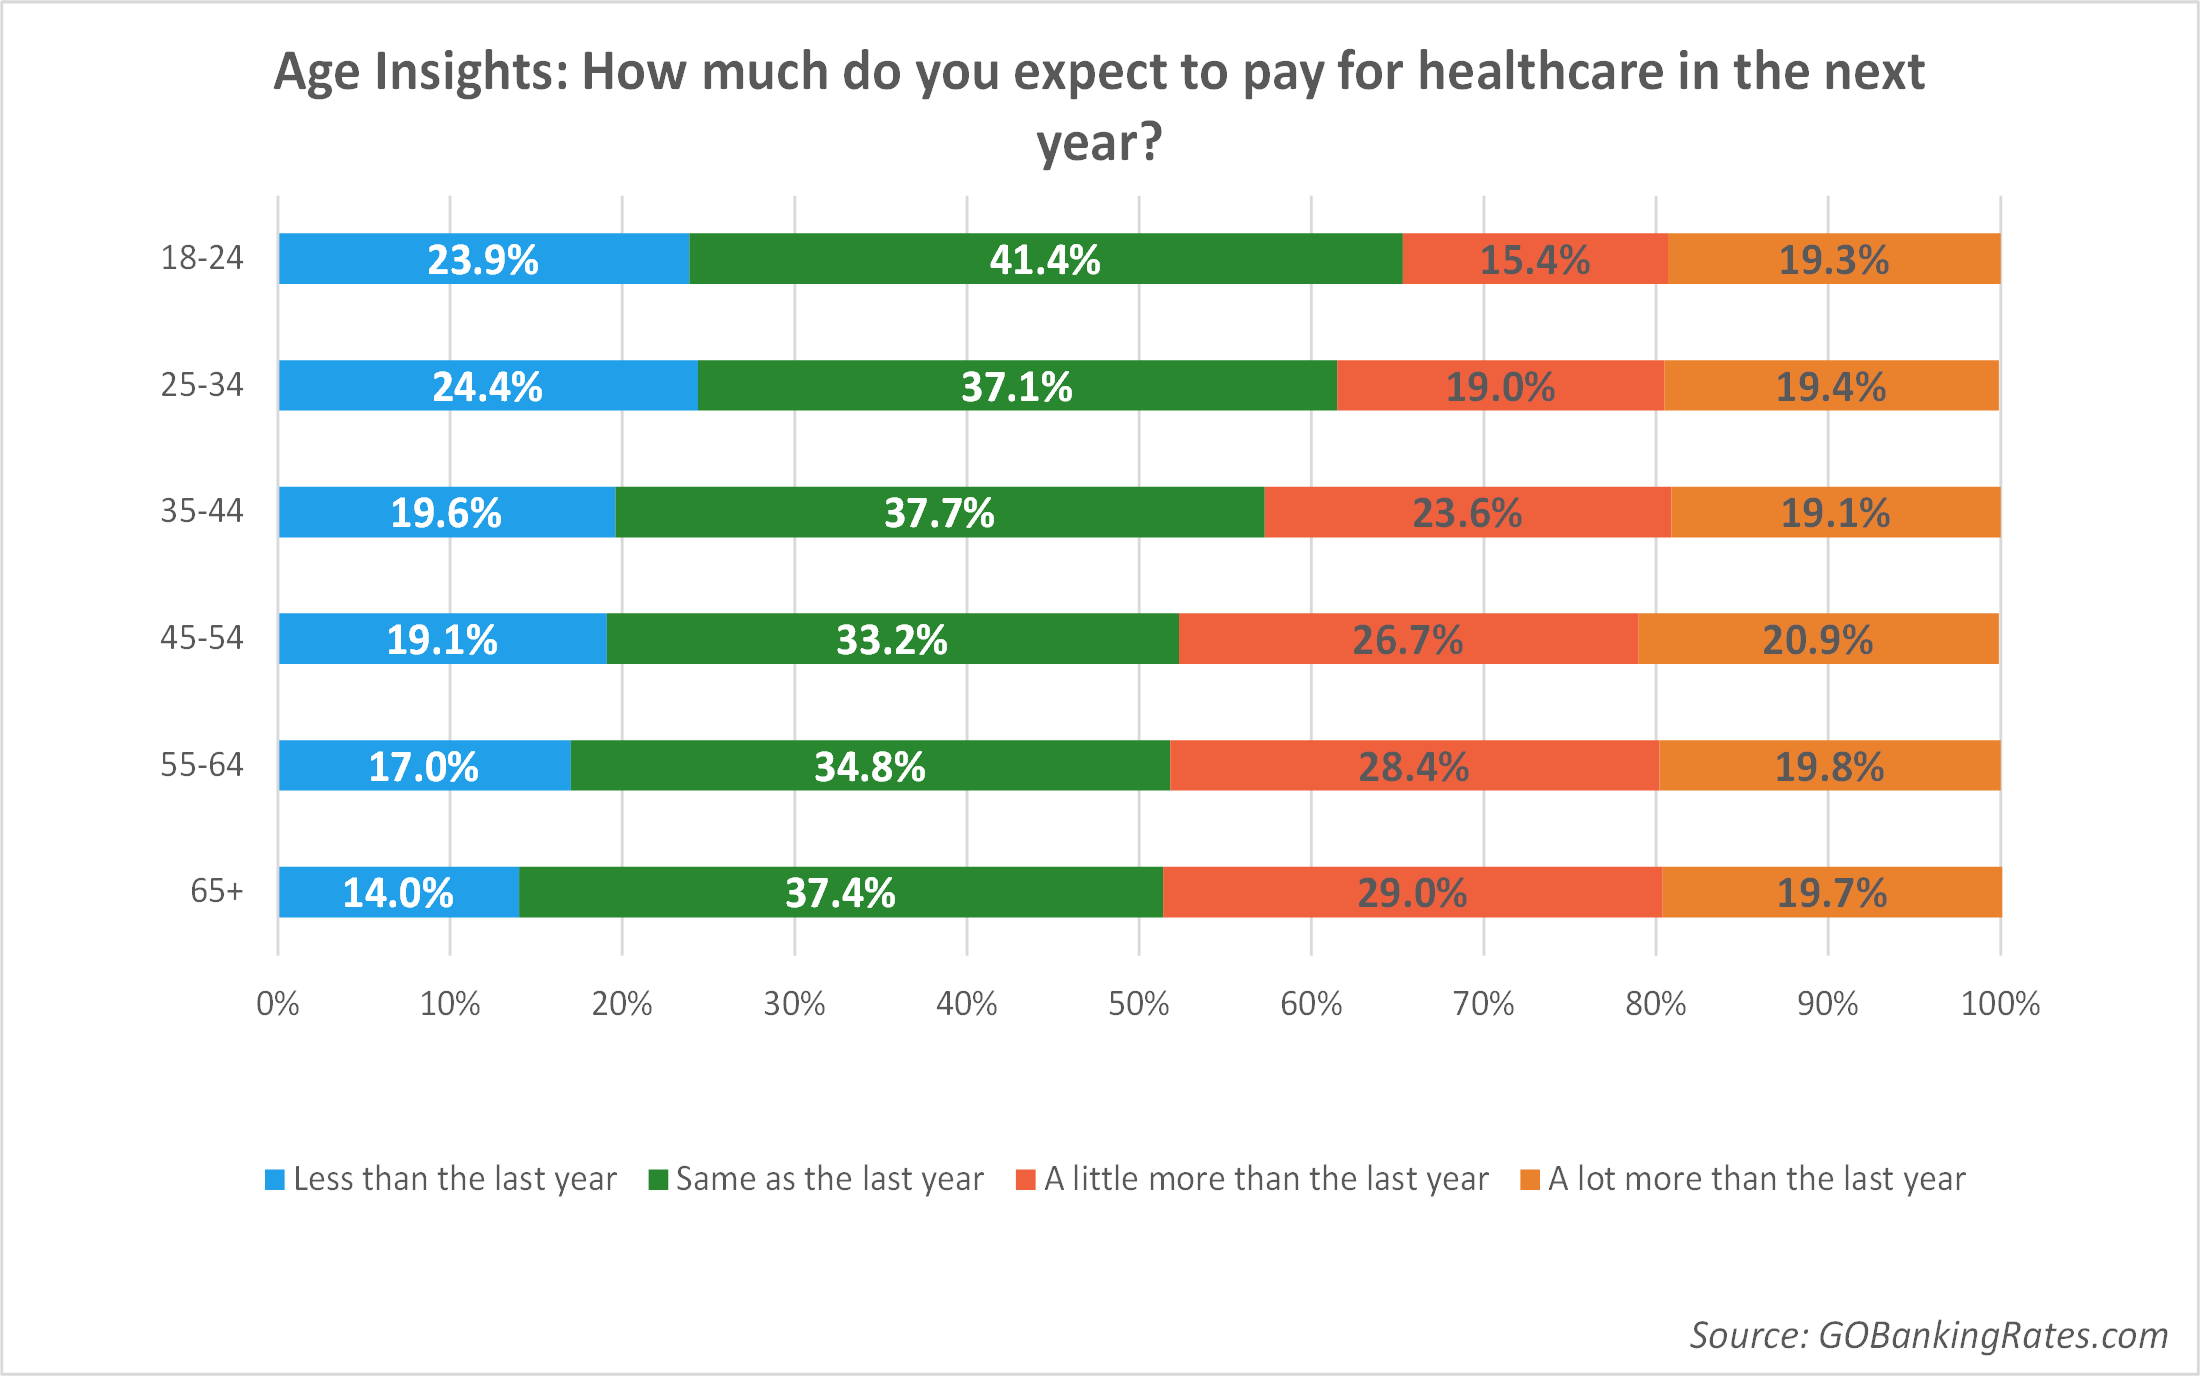 Age Insights: How much to you expect to pay for healthcare in the next year?